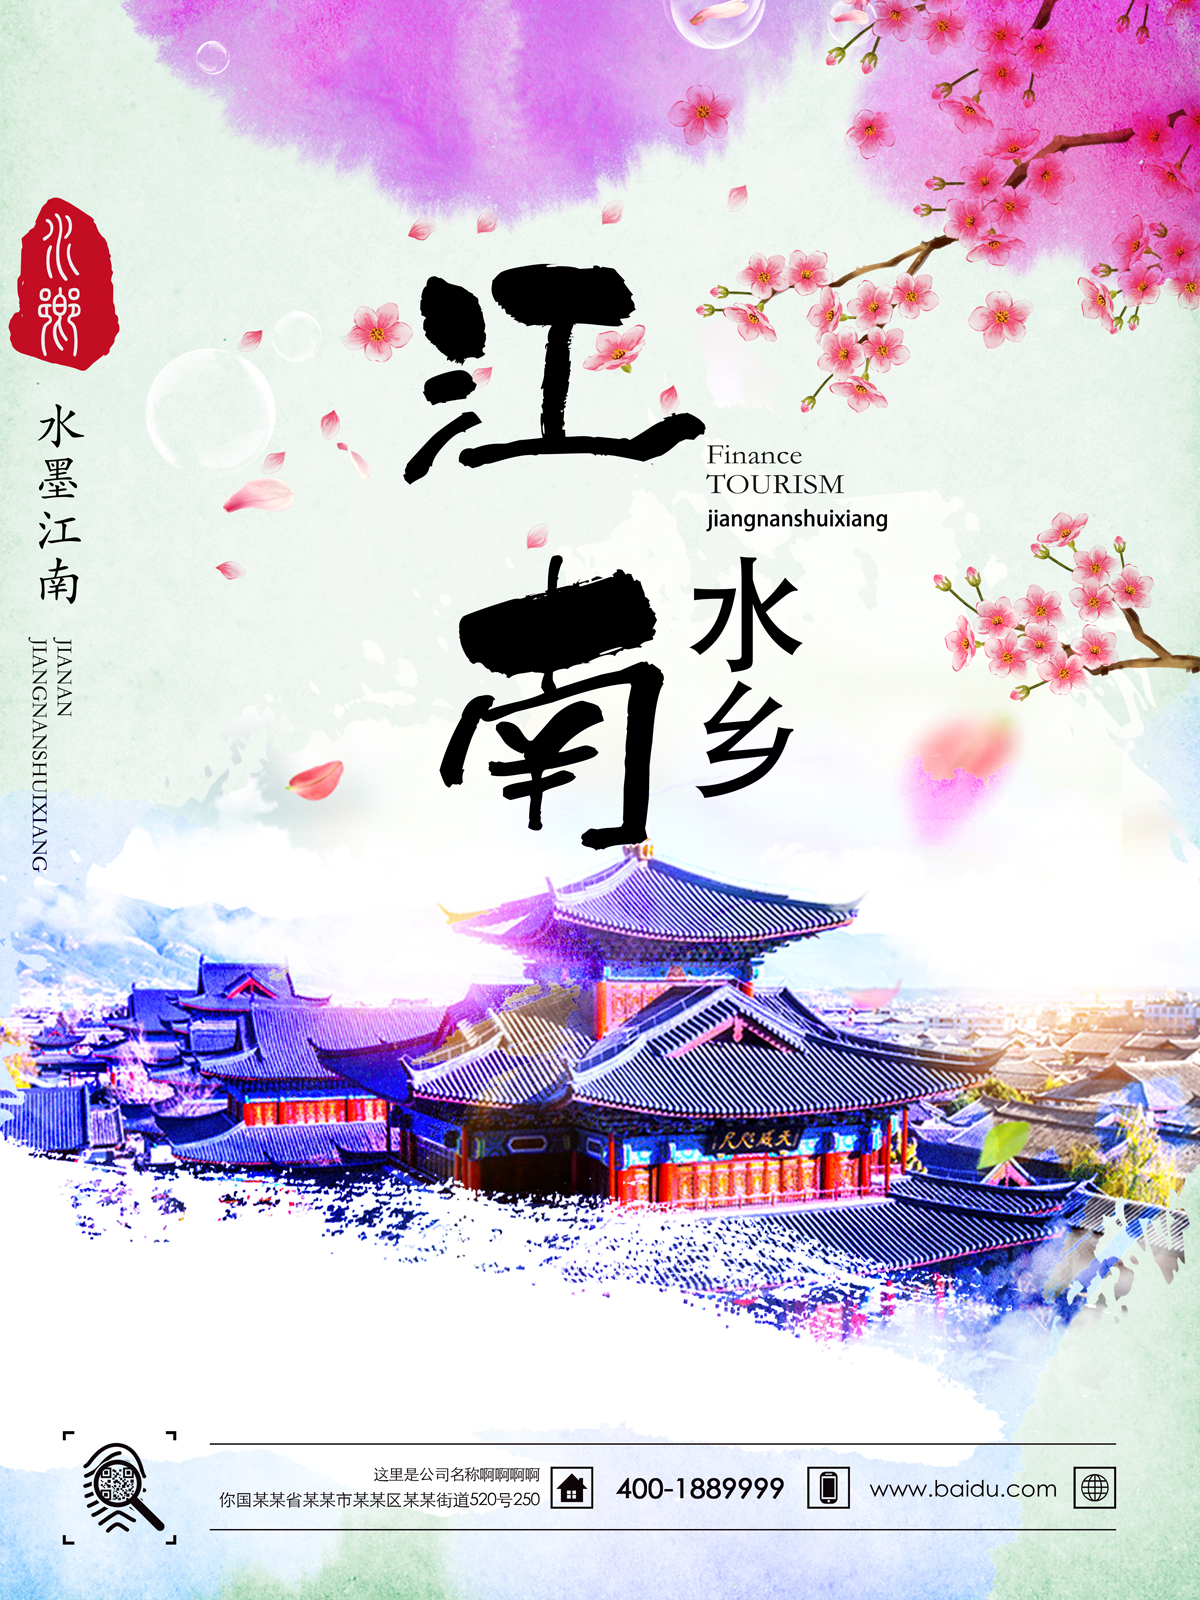 chinesefontdesign.com 2017 06 14 12 46 50 242273 China Jiangnan Water Tourism Poster PSD File Free Download watercolor travel posters template travel agency posters ink Jiangnan hand painted fresh and beautiful flowers falling peach Chinese wind poster template ancient buildings